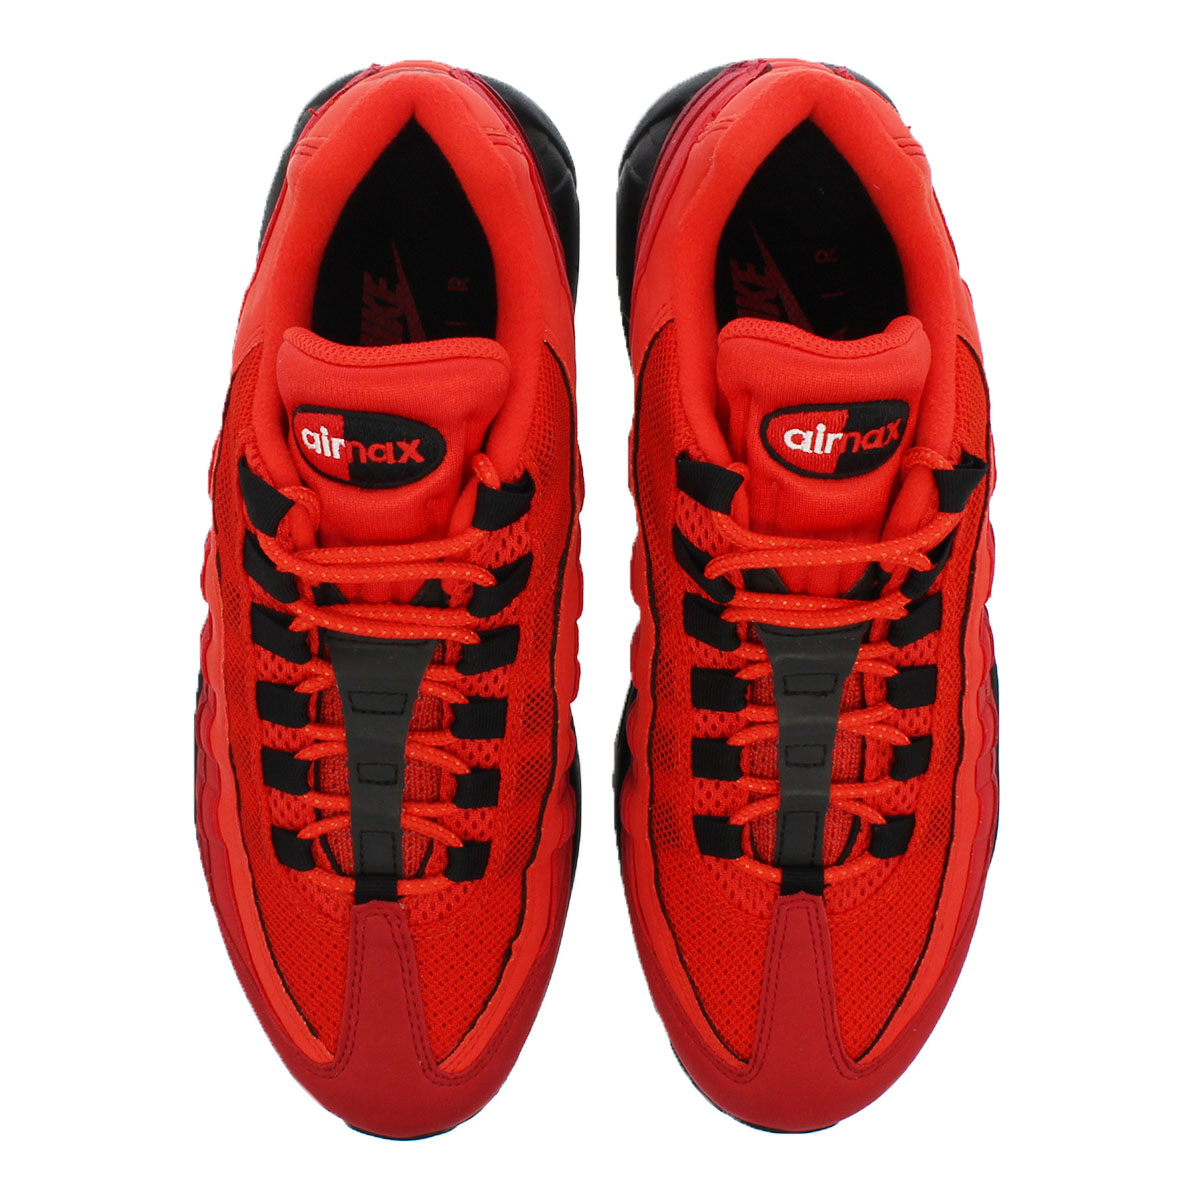 Wmns Nike Air Max 95 Og Team Redblack habanero Red